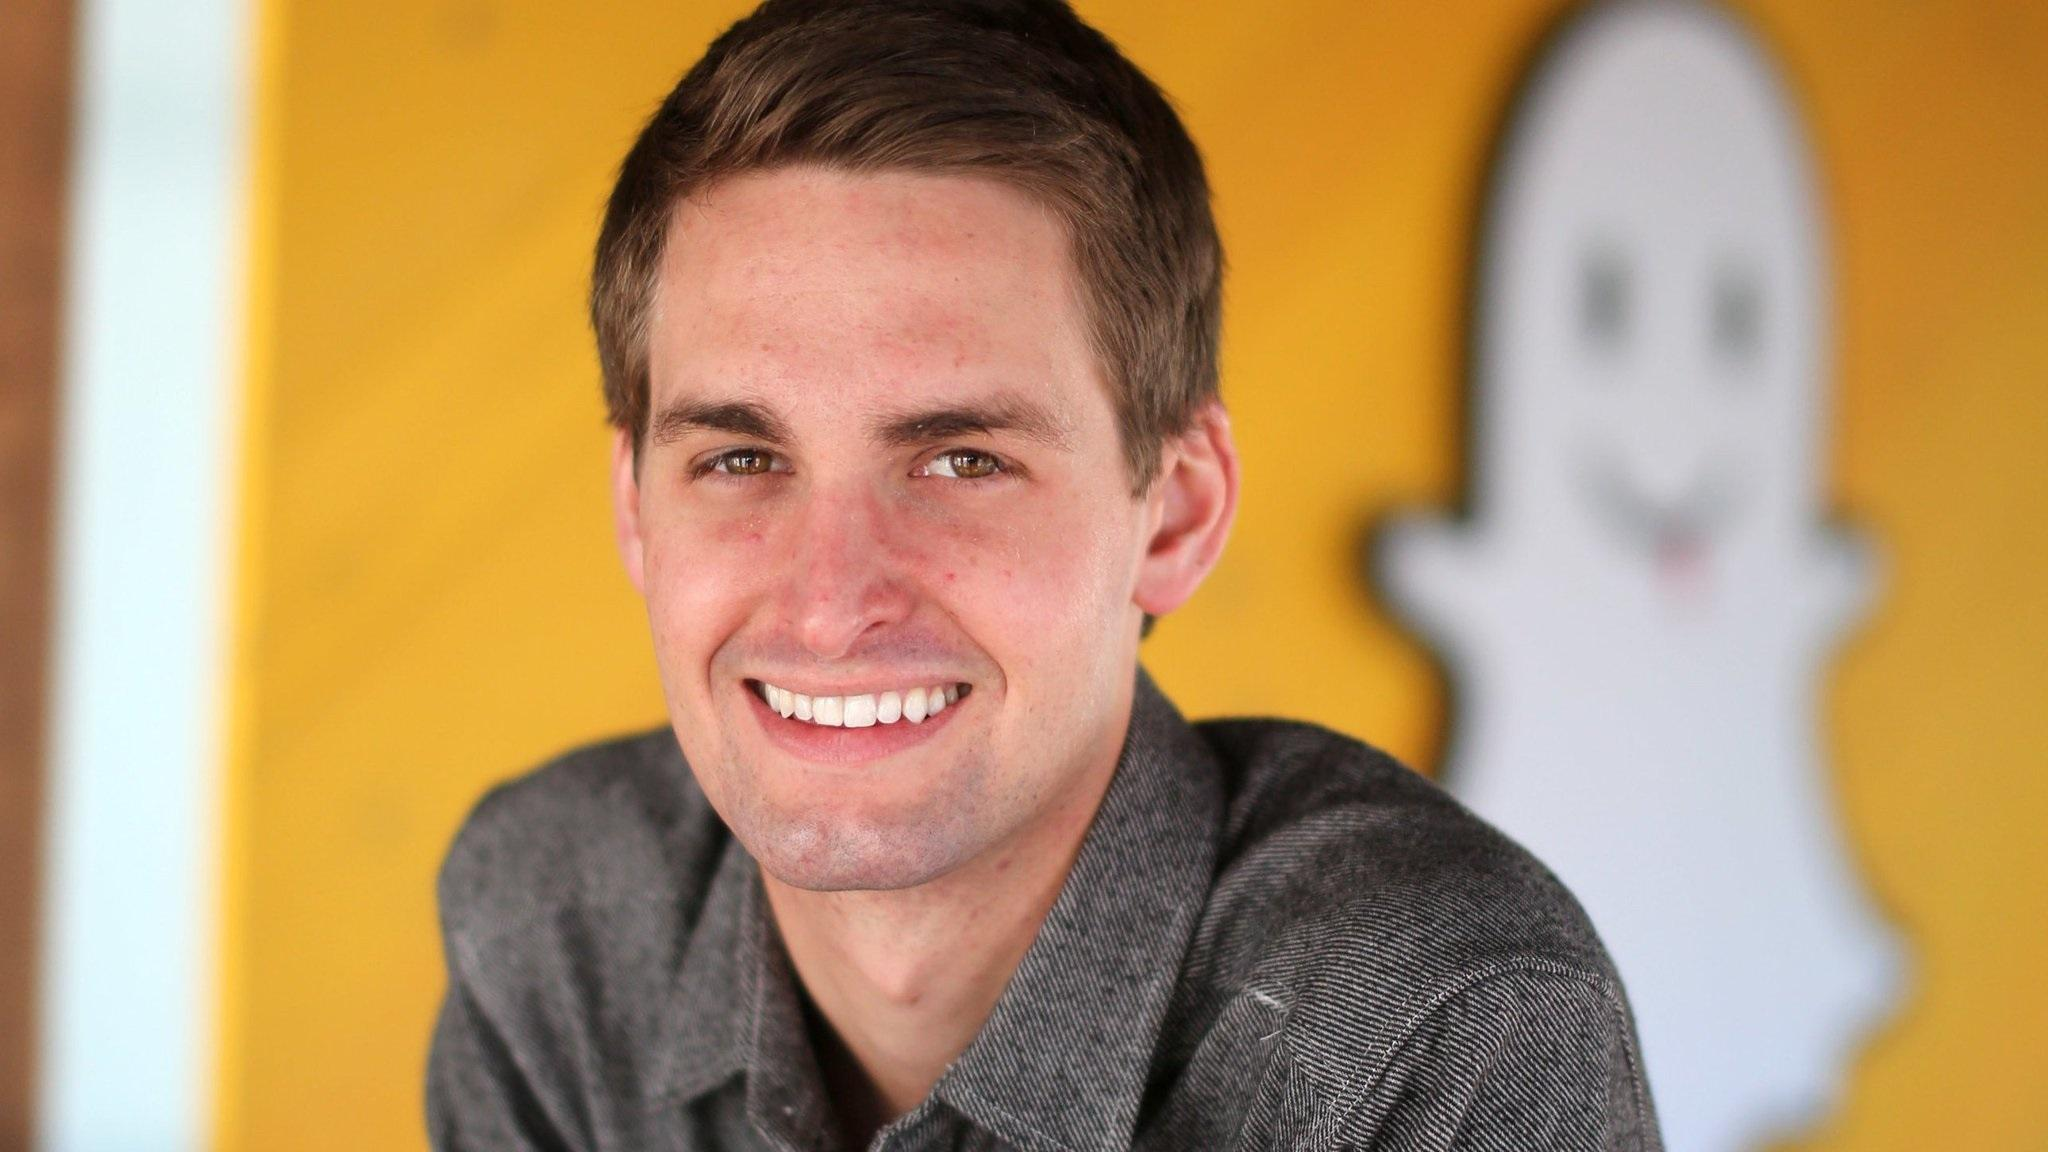 Snapchat Stocks in -21% Nosedive After Posting Poor Q1 Results